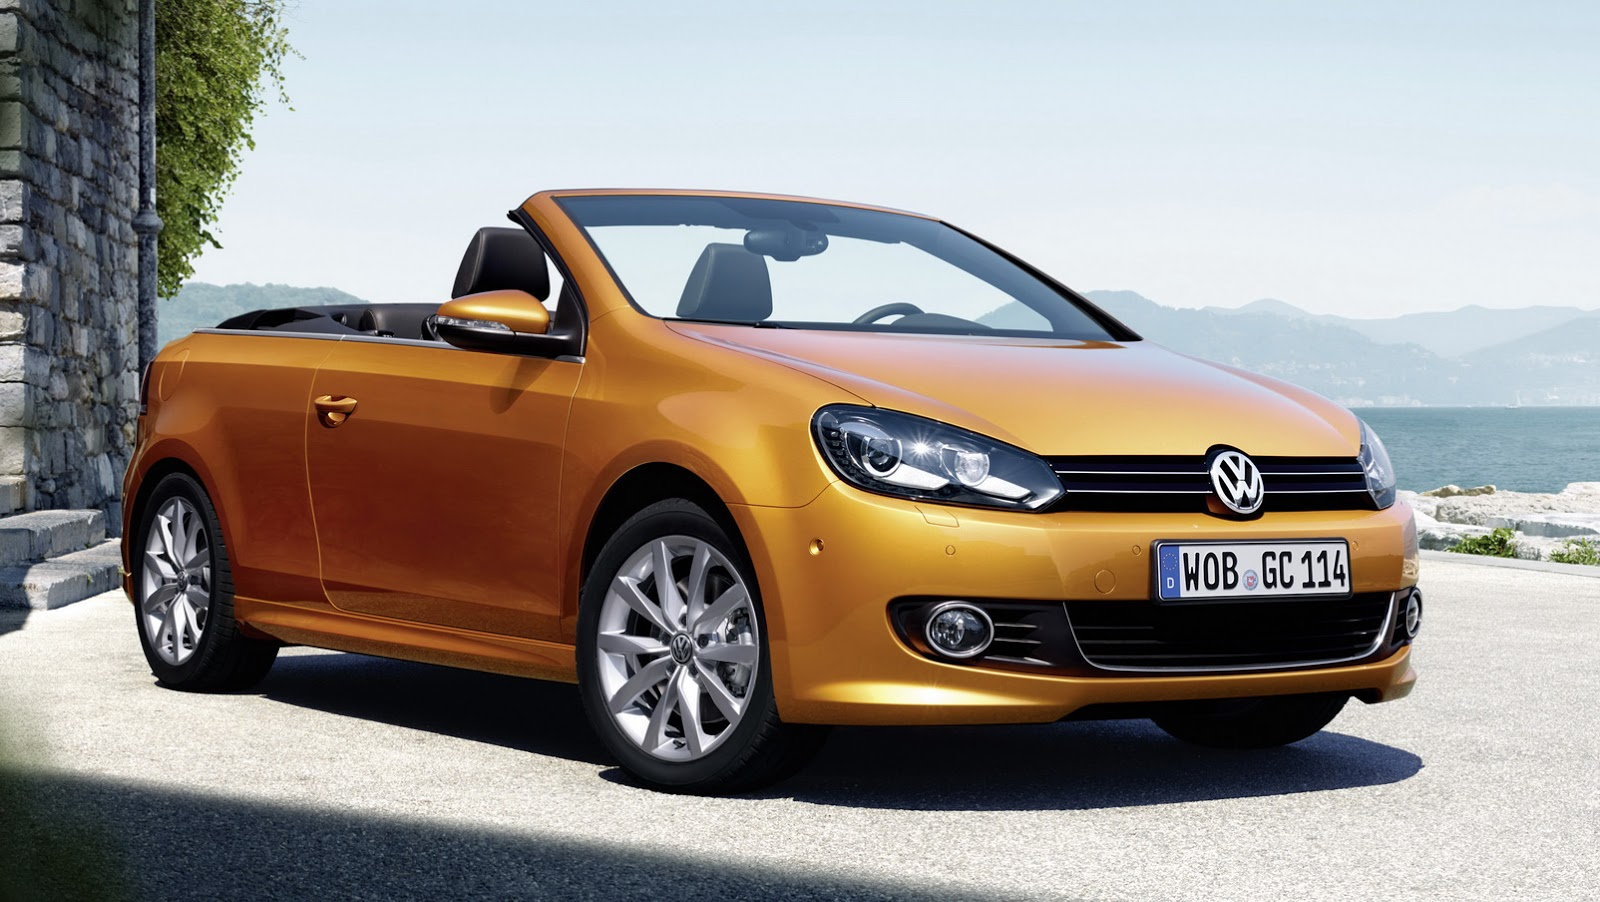 Volkswagen cabriolet photo - 2